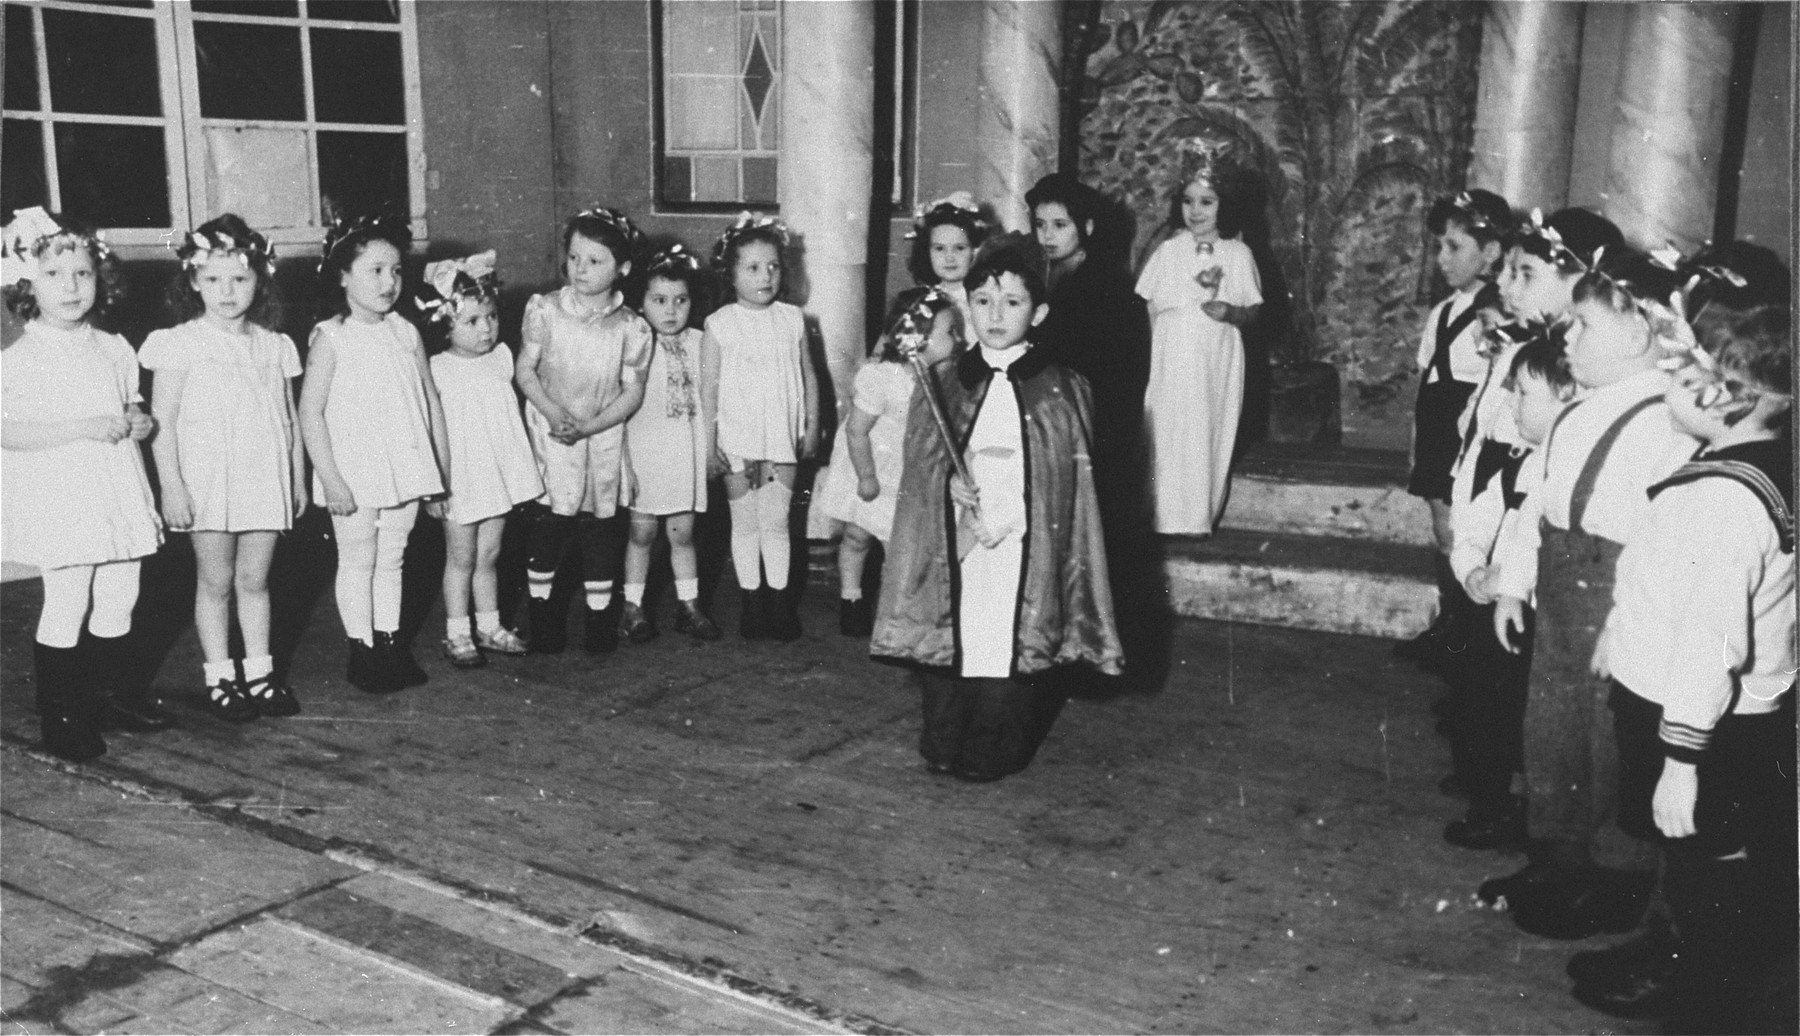 Young children perform in a Purim show in the Zeilsheim displaced person's camp.   Fay Robinson (later Shlimovitz) on the far left, is the daughter of the photographer. She was born July 22, 1941 in Novaya Odessa, Ukraine. She went to Zeilsheim in 1945 and later emigrated to the United States in 1948.